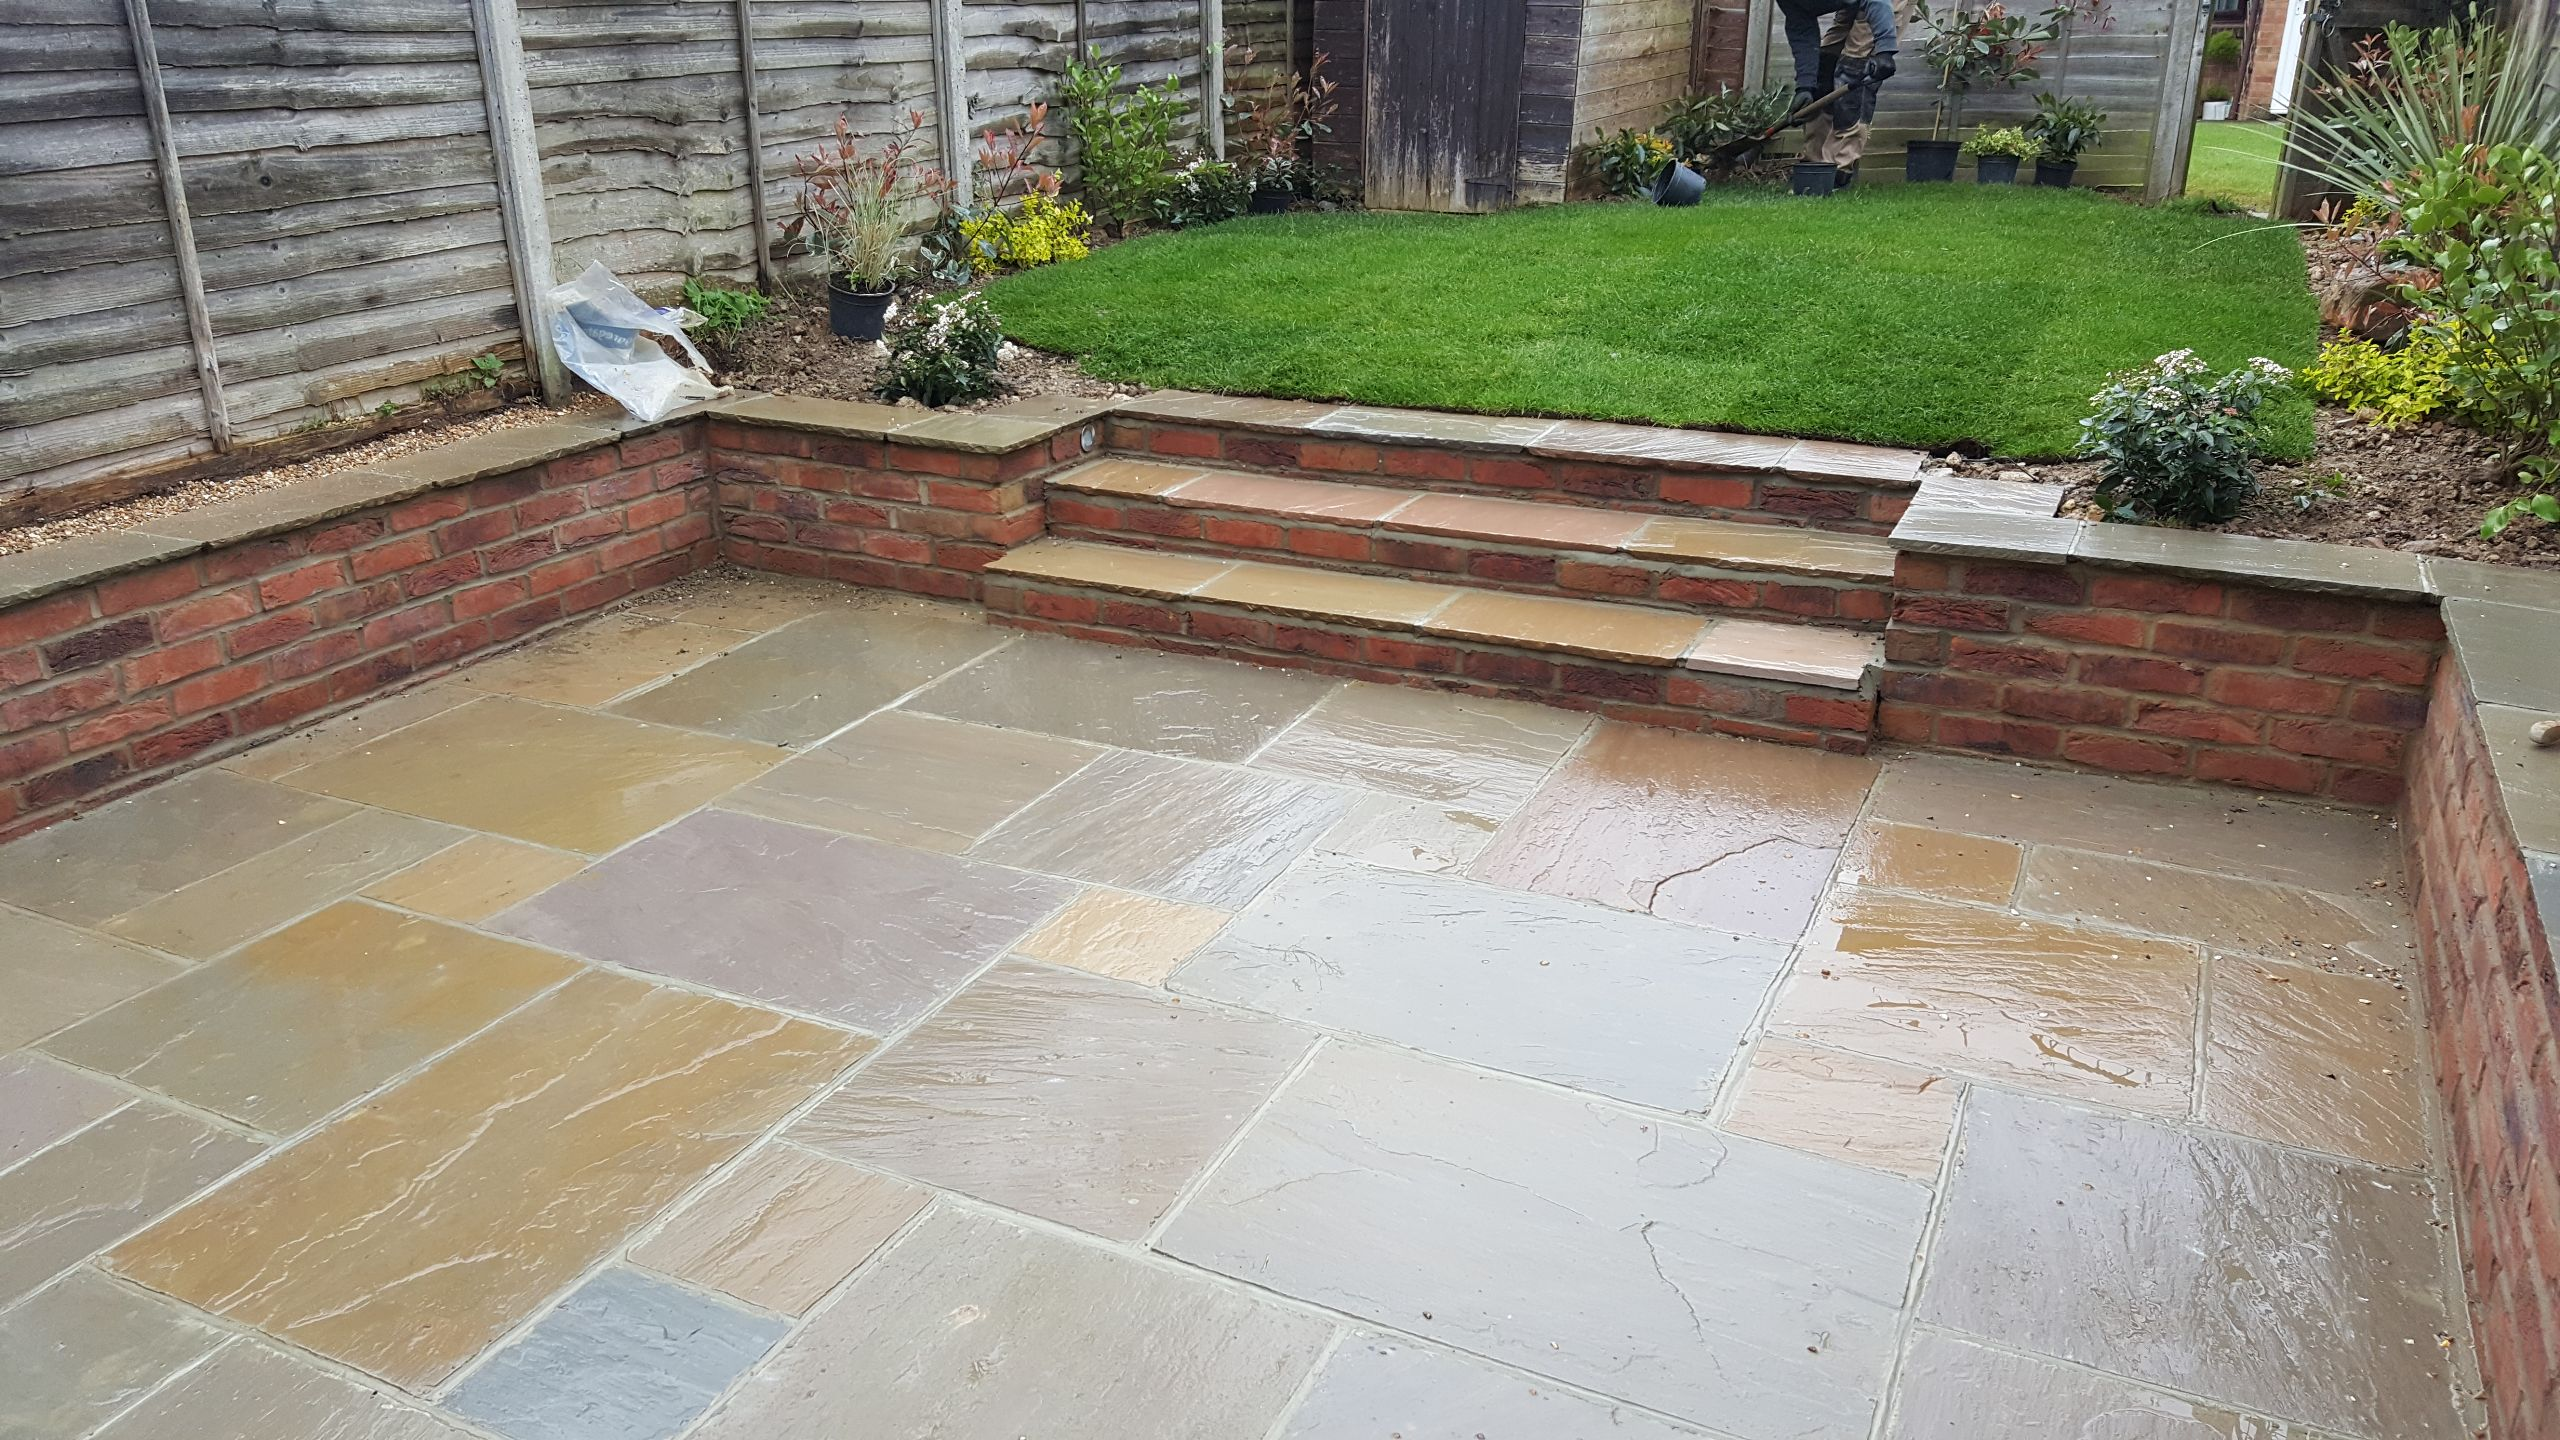 Garden landscaped in Horsham with Patio, steps and turf